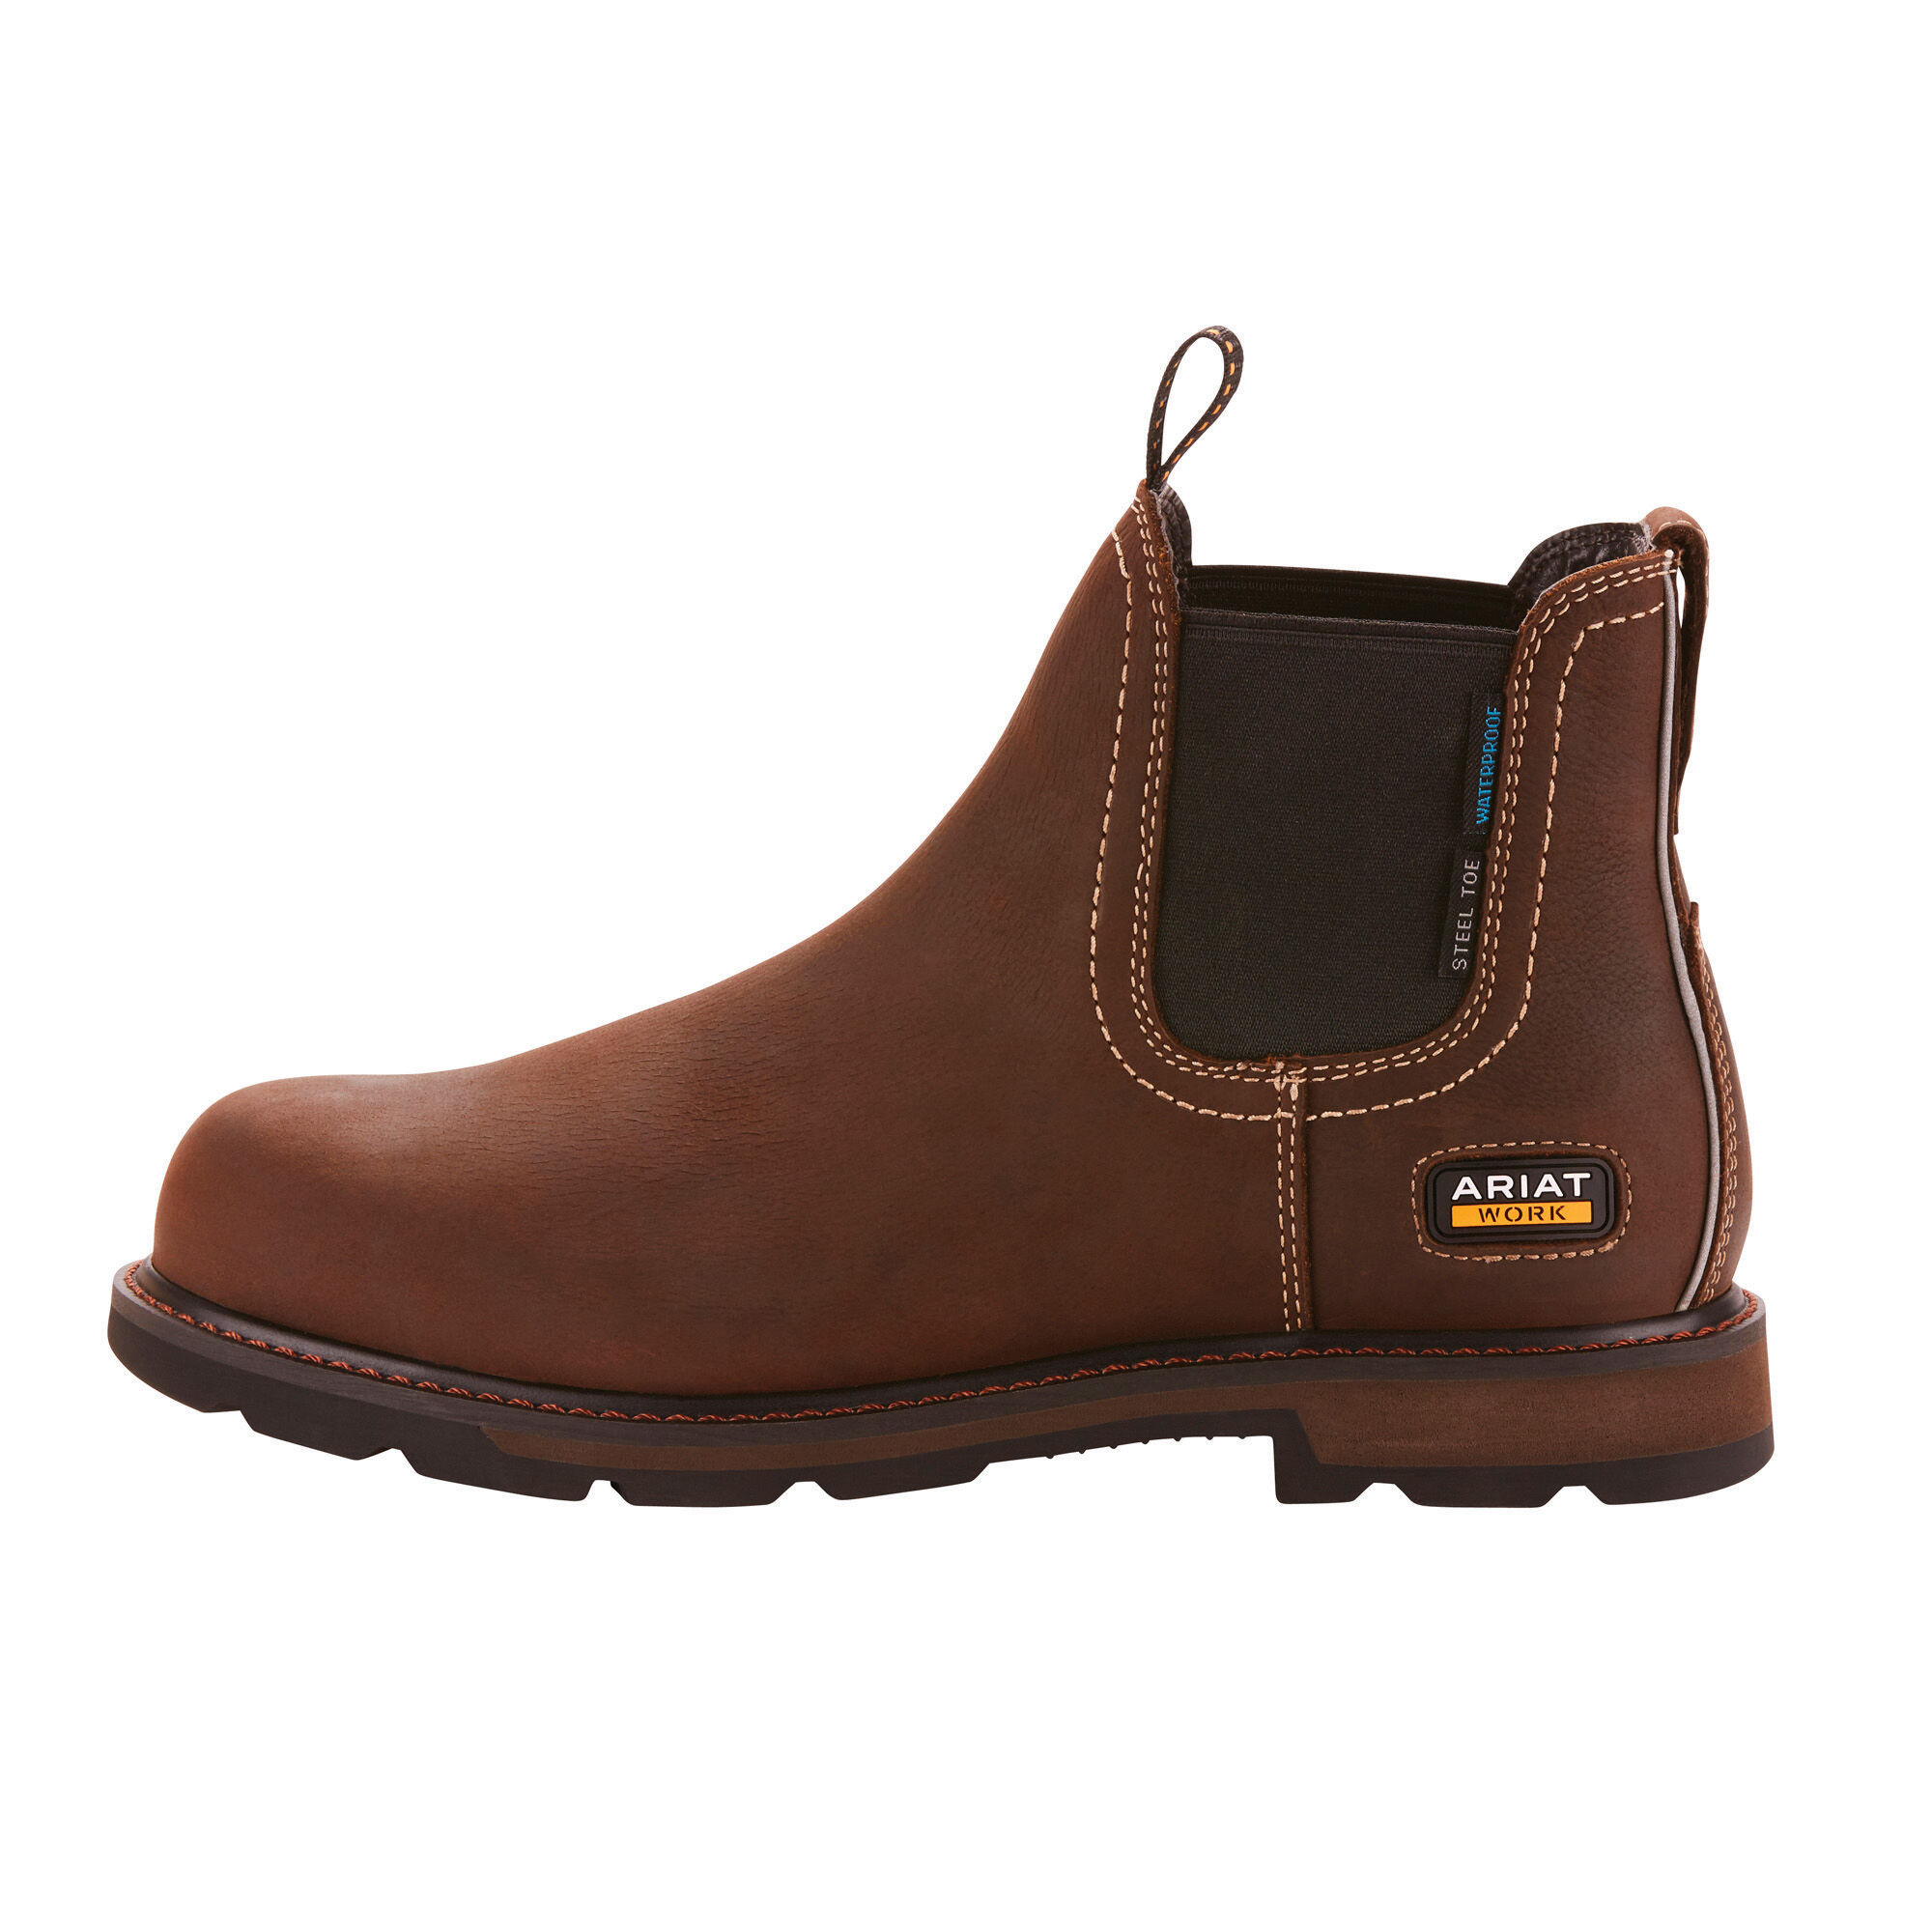 places that sell steel toe shoes